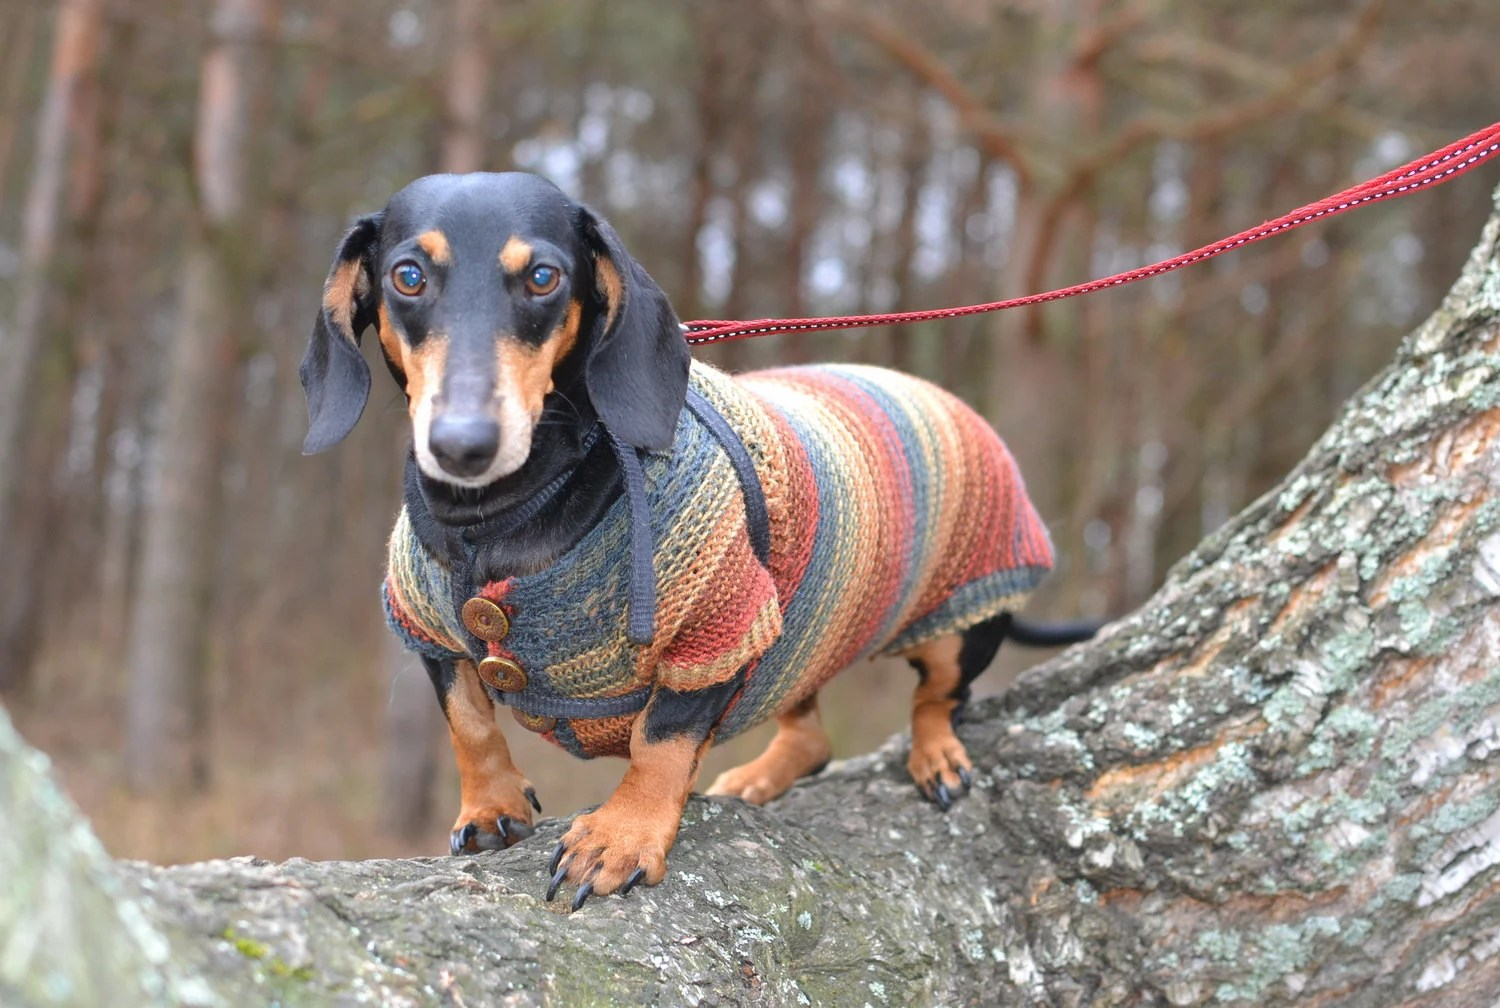 dachshund clothes dachshund dog clothes dachshund by